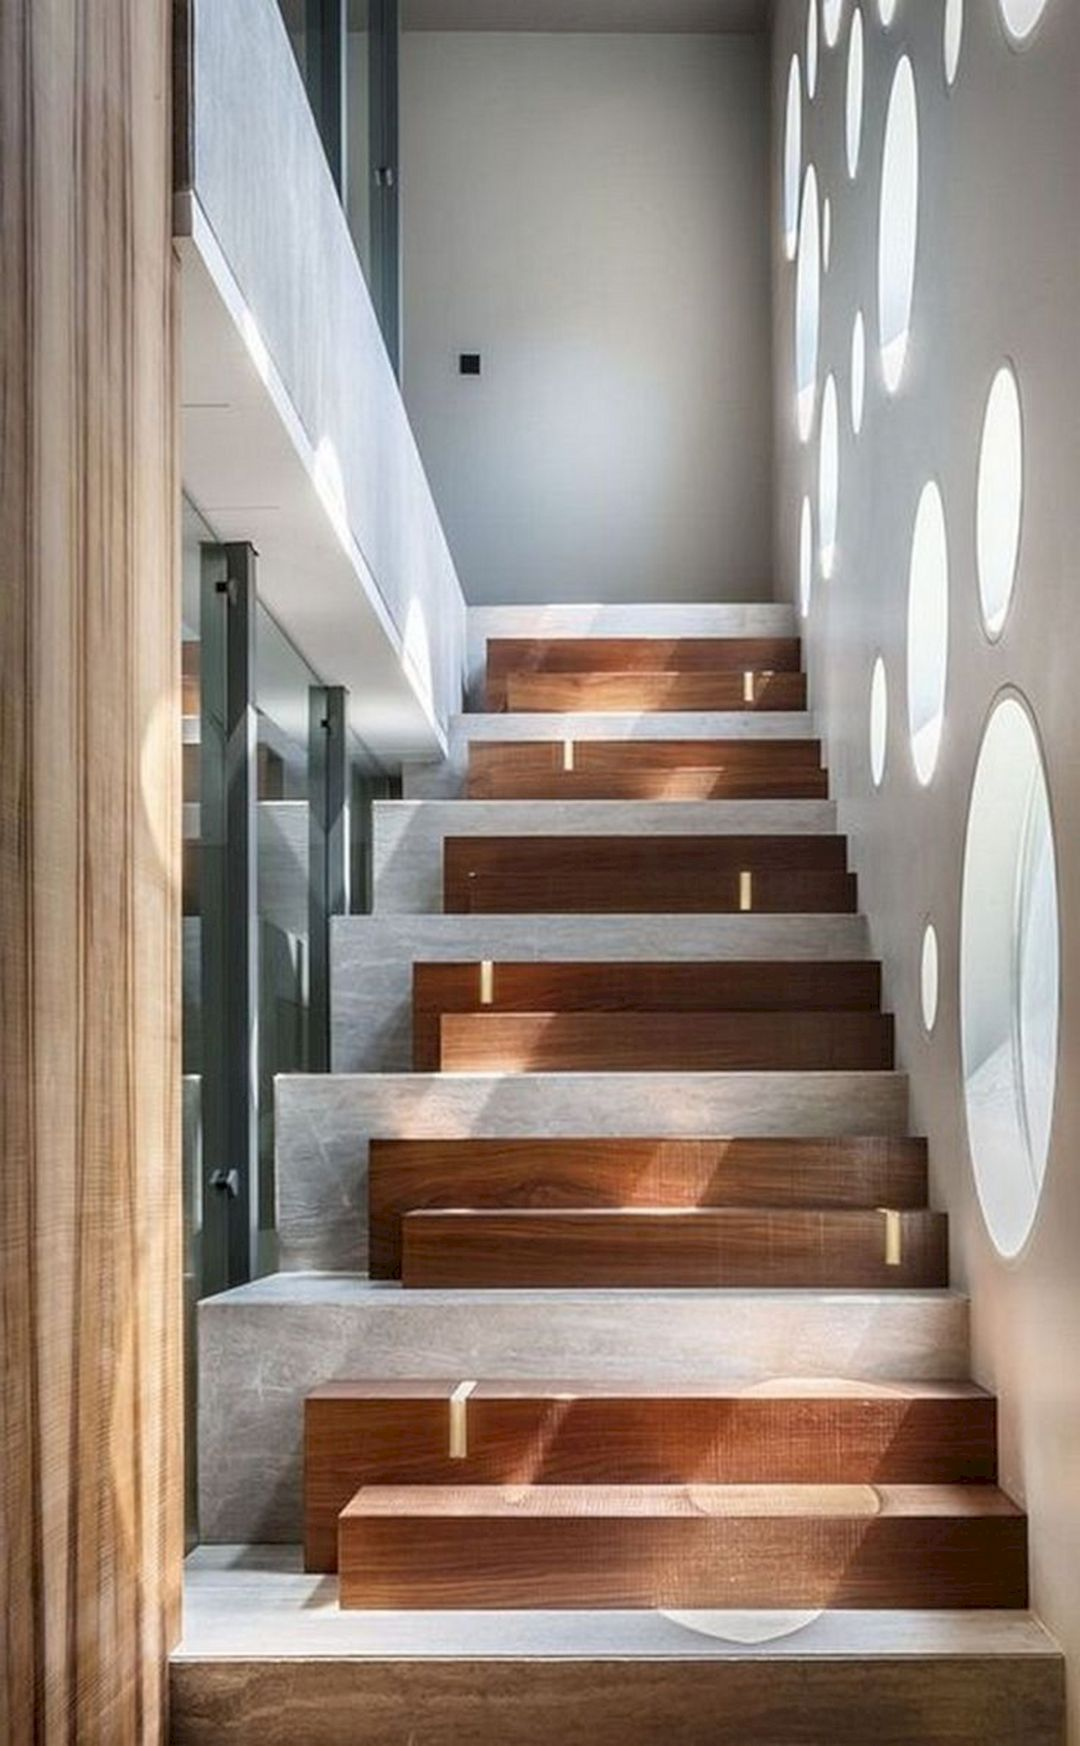 12 Inspirational Home Stairs Design For Various Amazing Interior